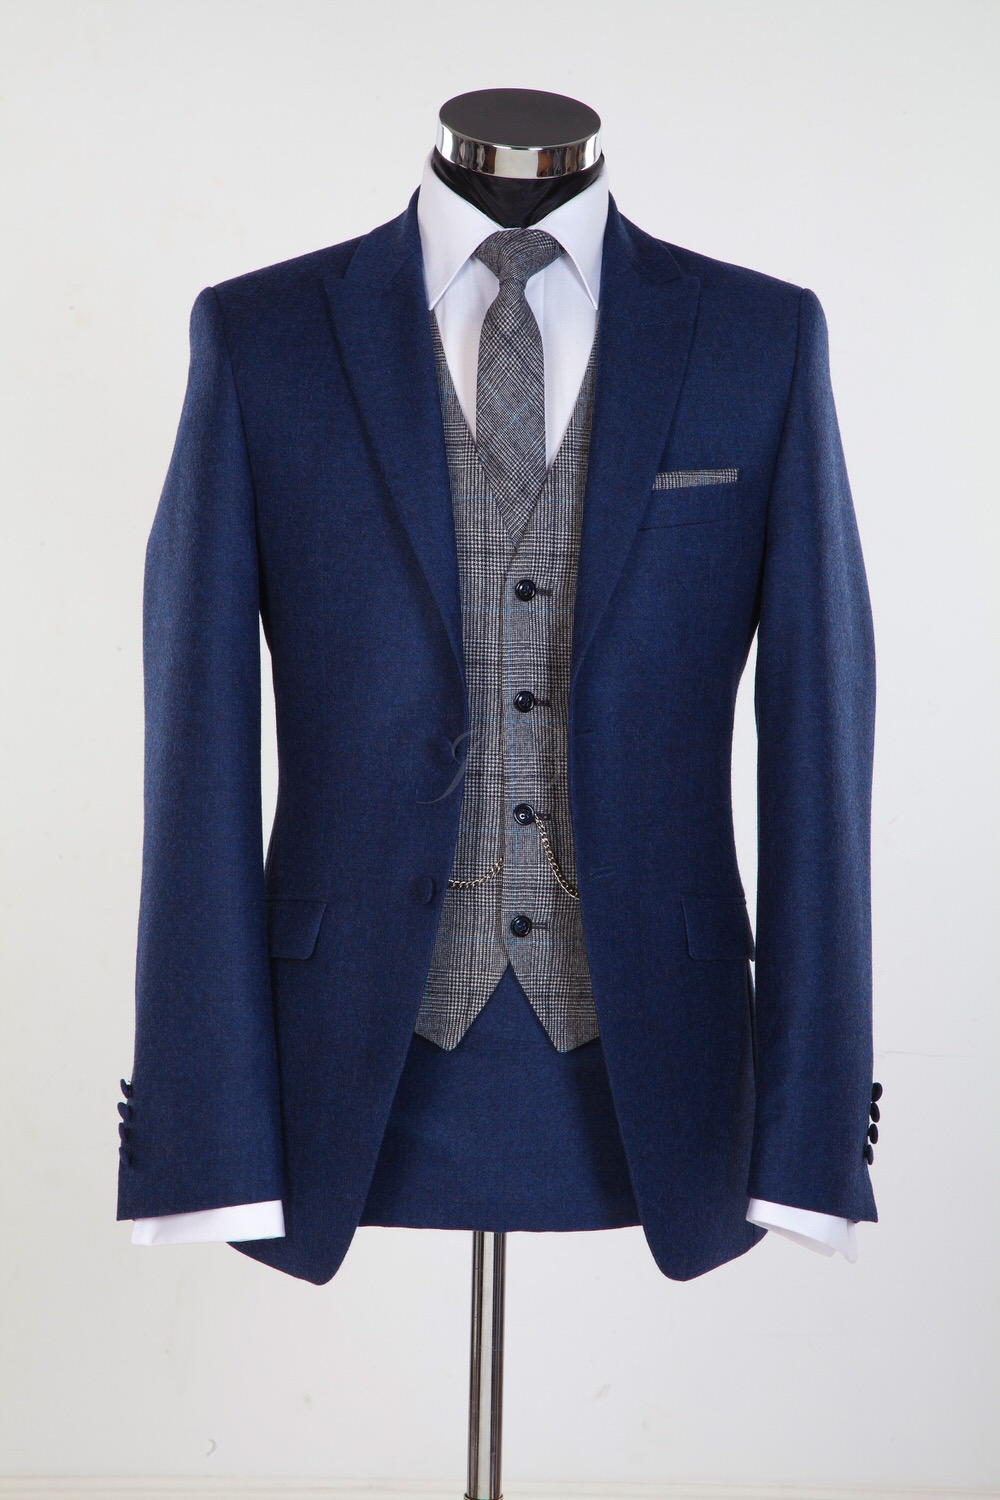 Wedding trends for grooms for 2015 from gentlemens for Blue suit shirt ideas